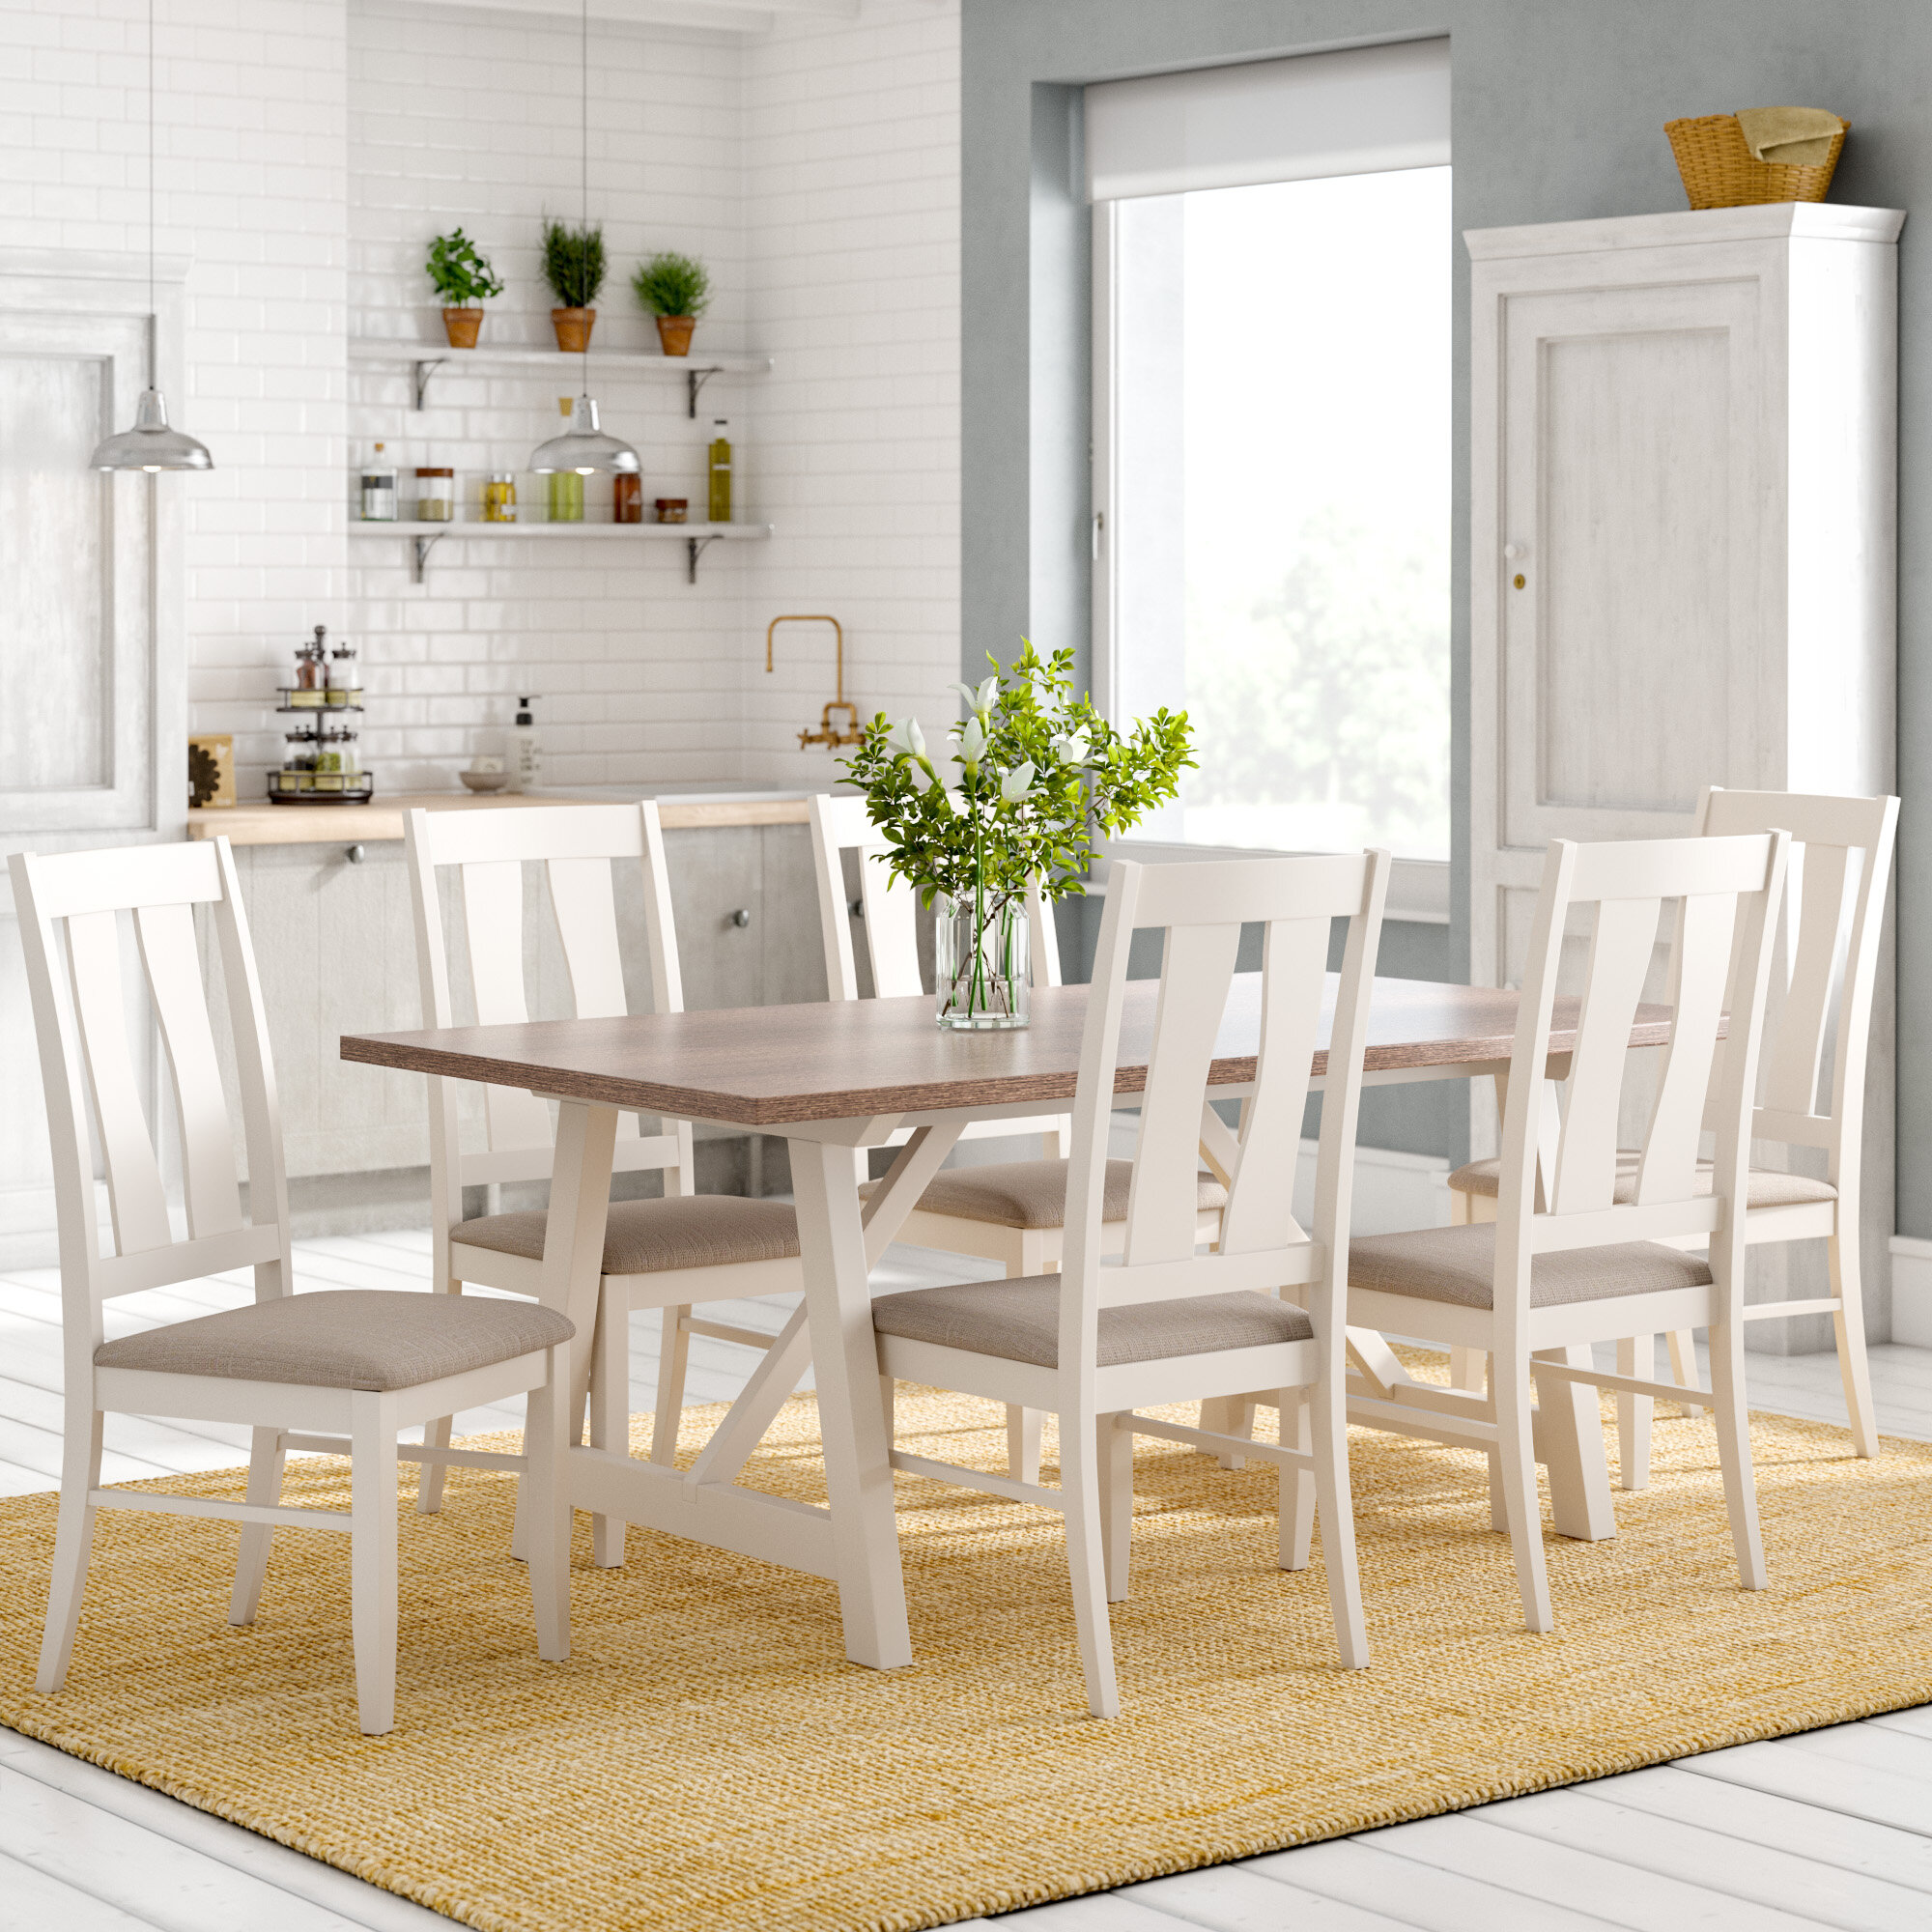 new concept bcf6a 8d2fc Lombardy Dining Table and 6 Chairs